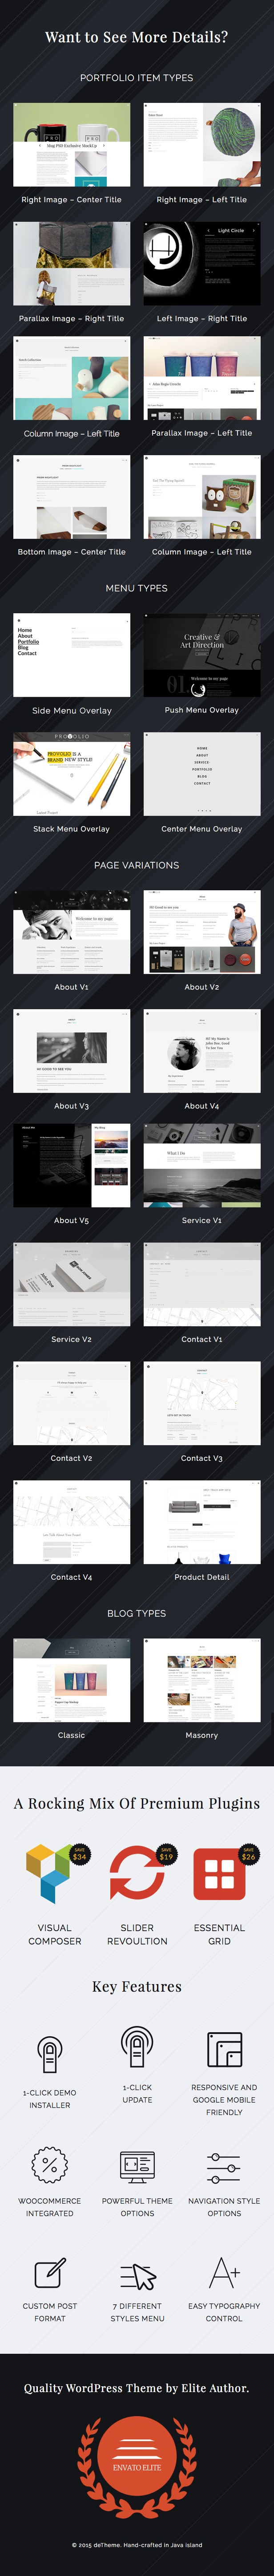 Provolio - WordPress Theme For Creative Minds - 3